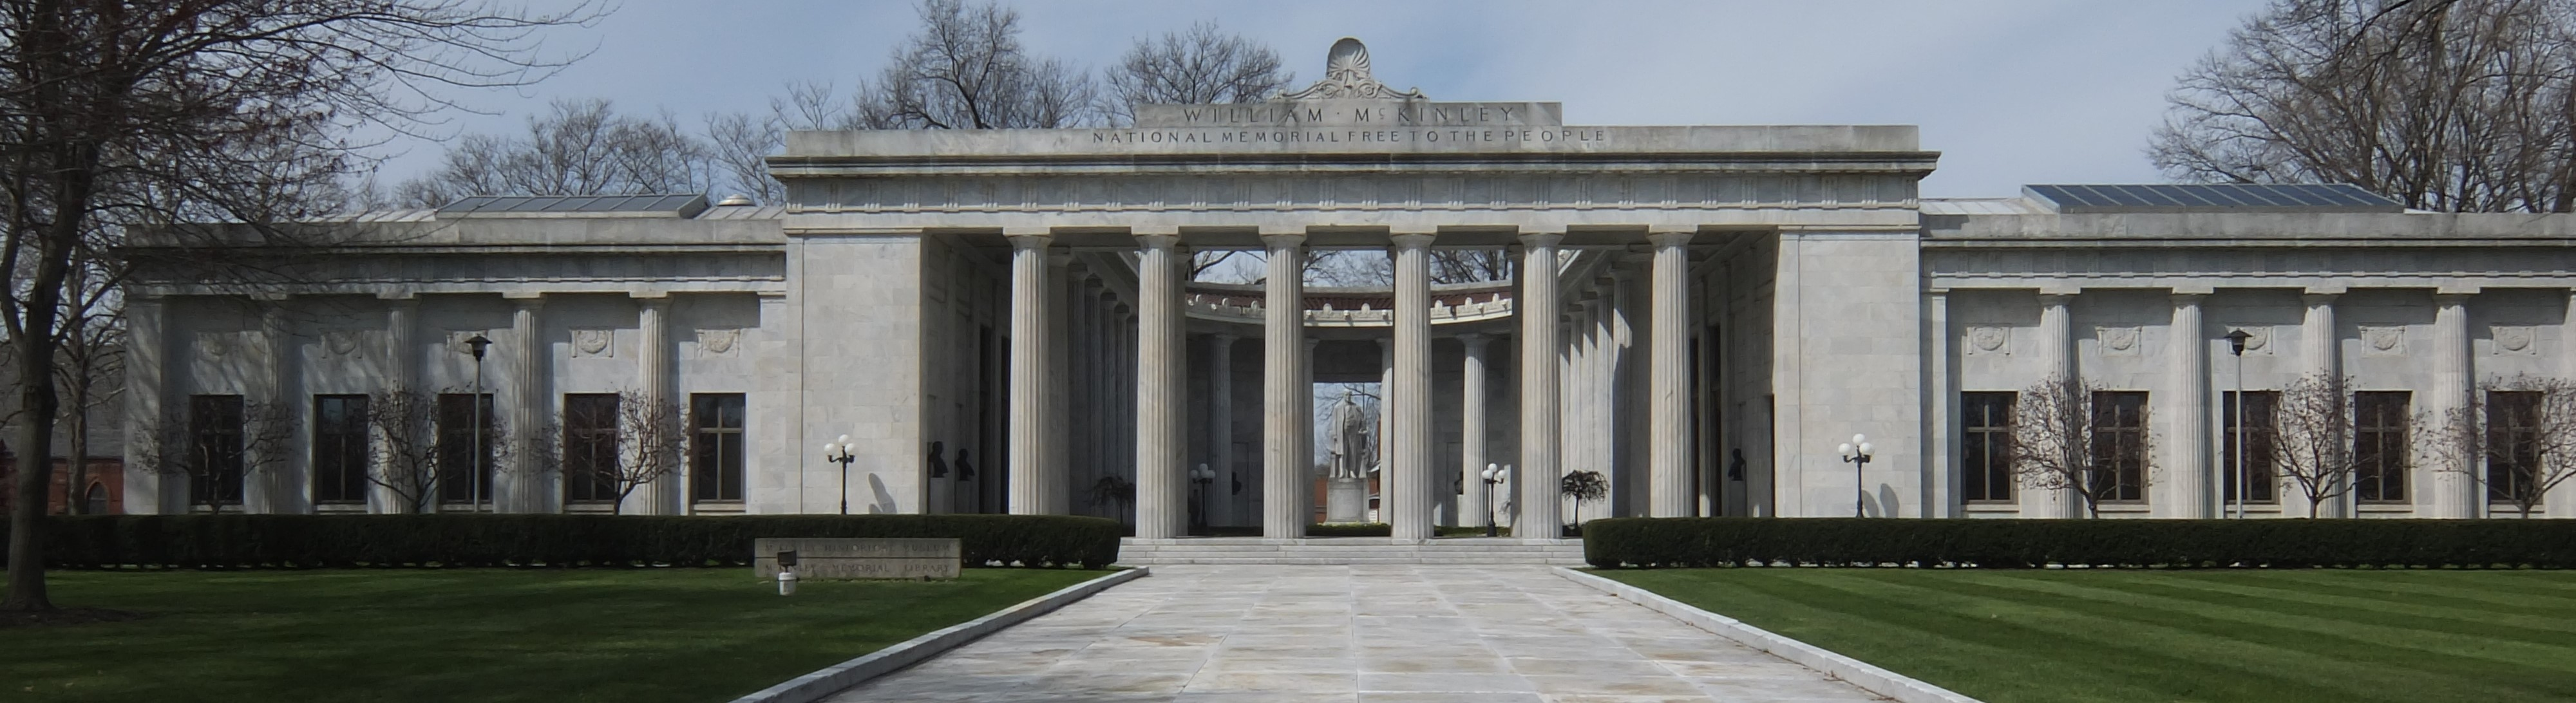 The National McKinley Birthplace Memorial